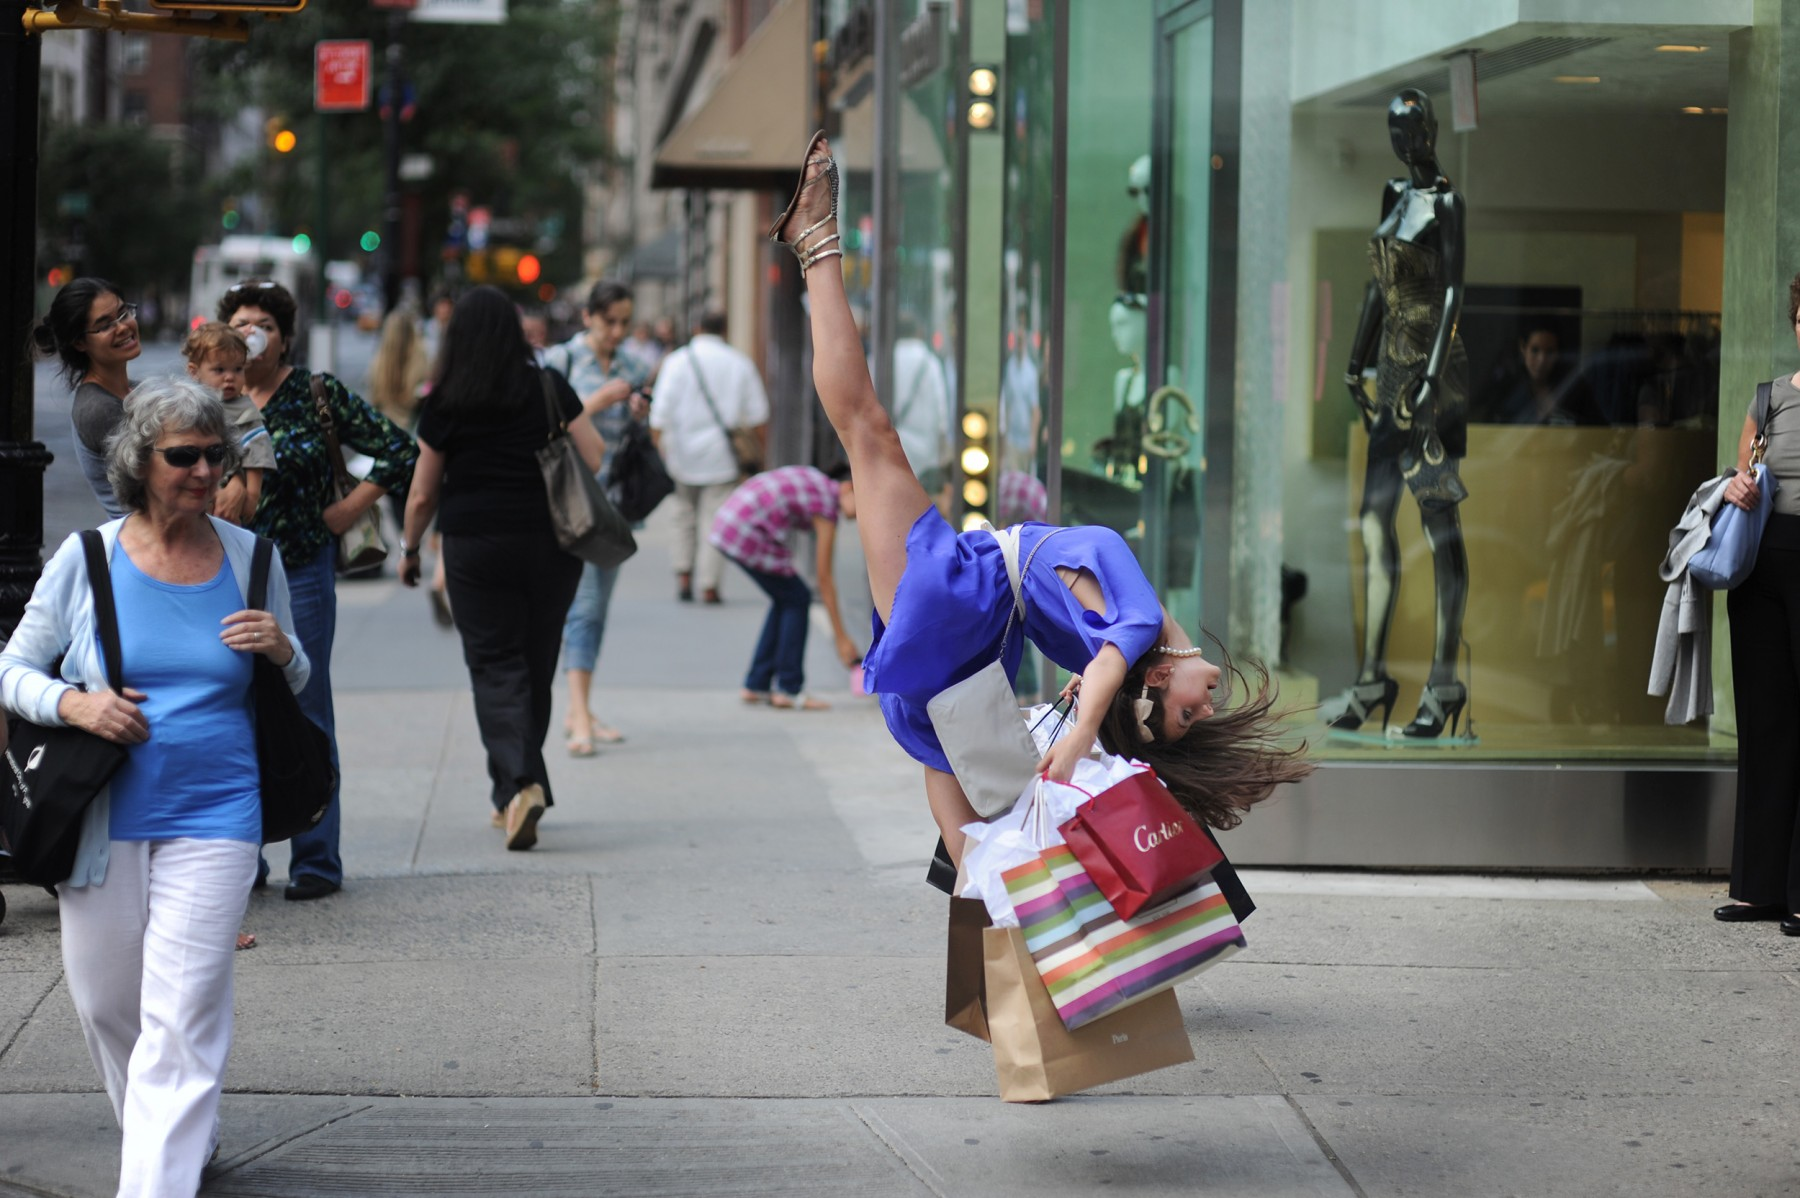 dancers-among-us-chicquero-photography-dance-on-madison-avenue-arianna-bickle